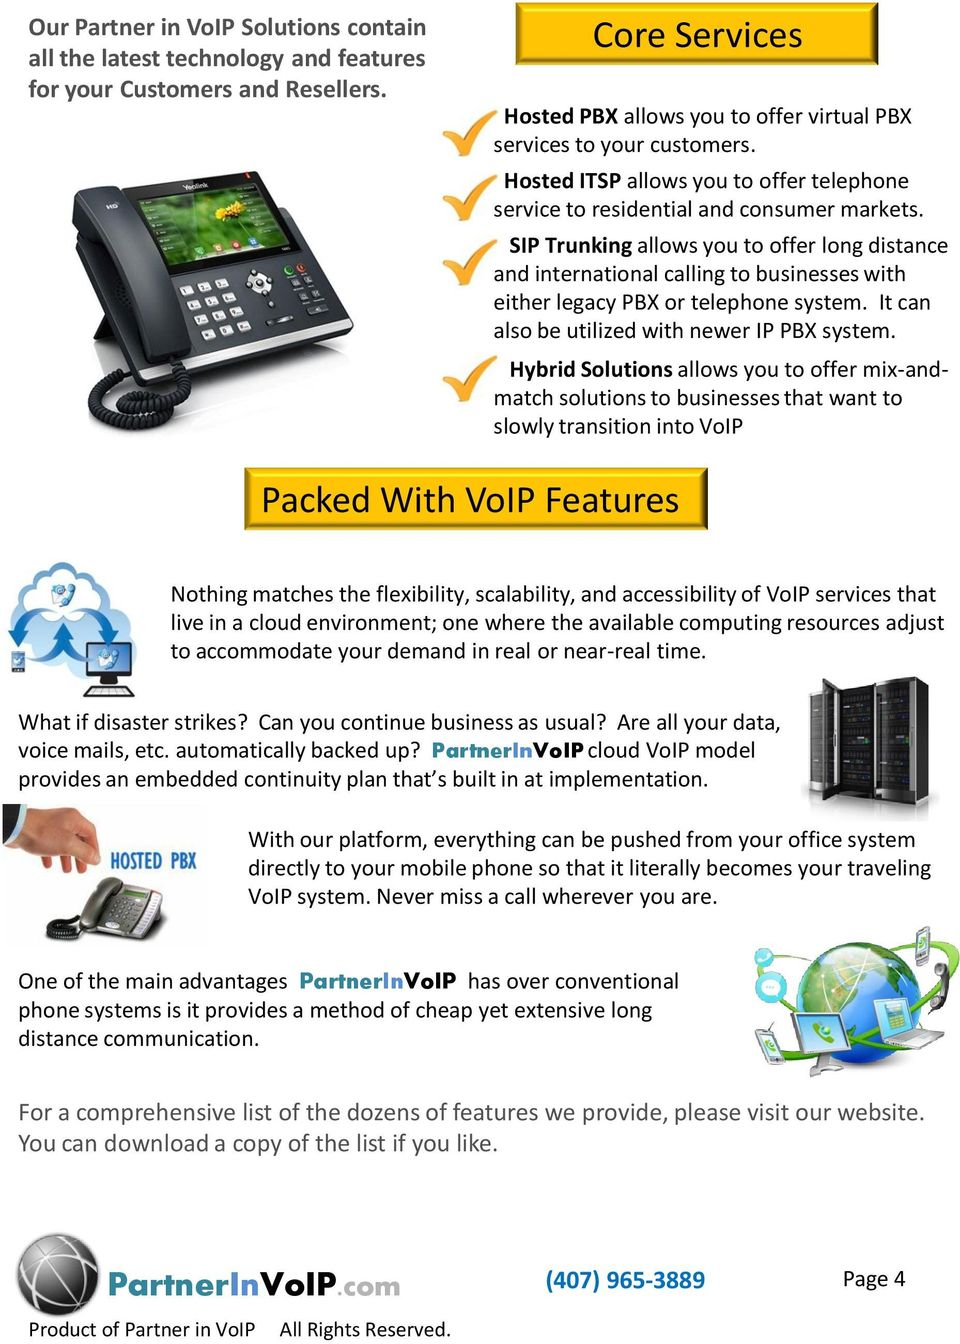 SIP Trunking allows you to offer long distance and international calling to businesses with either legacy PBX or telephone system. It can also be utilized with newer IP PBX system.